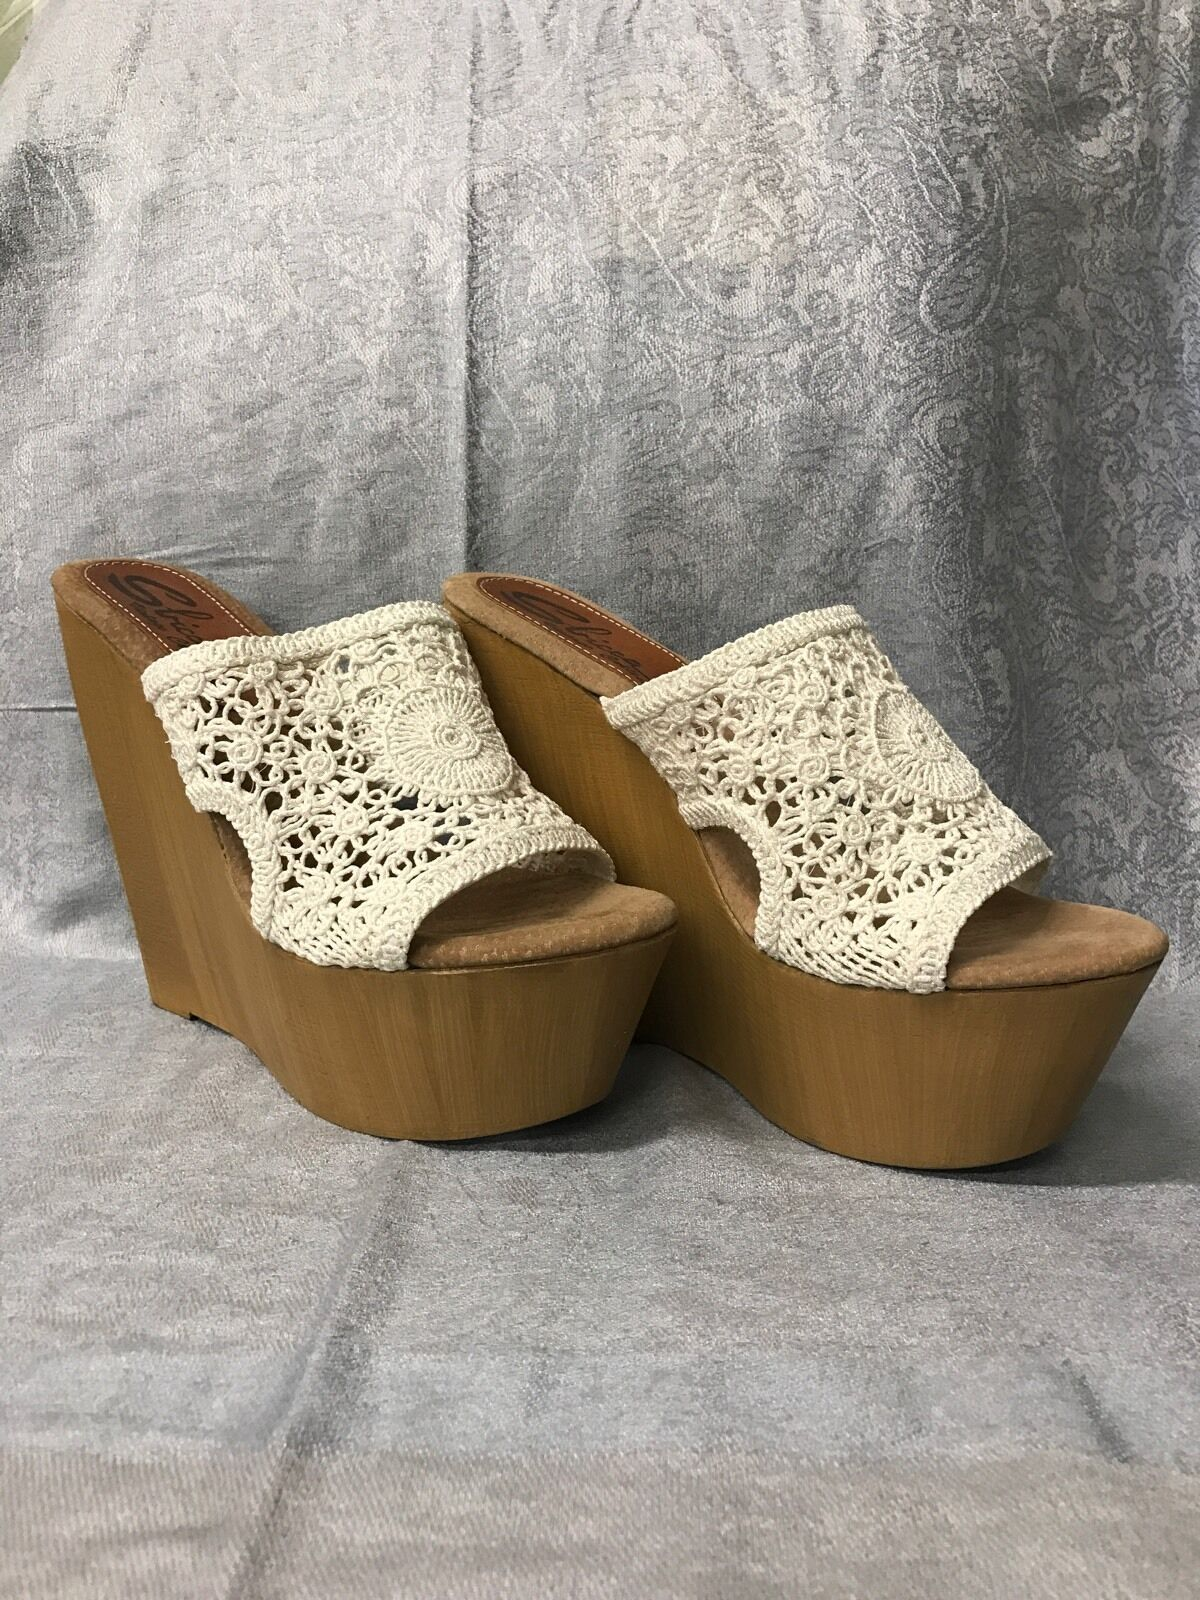 SBICCA VINTAGE COLLECTION WEISS CROCHET WEDGE 10 OPEN BACK BOSTON PROPER 41